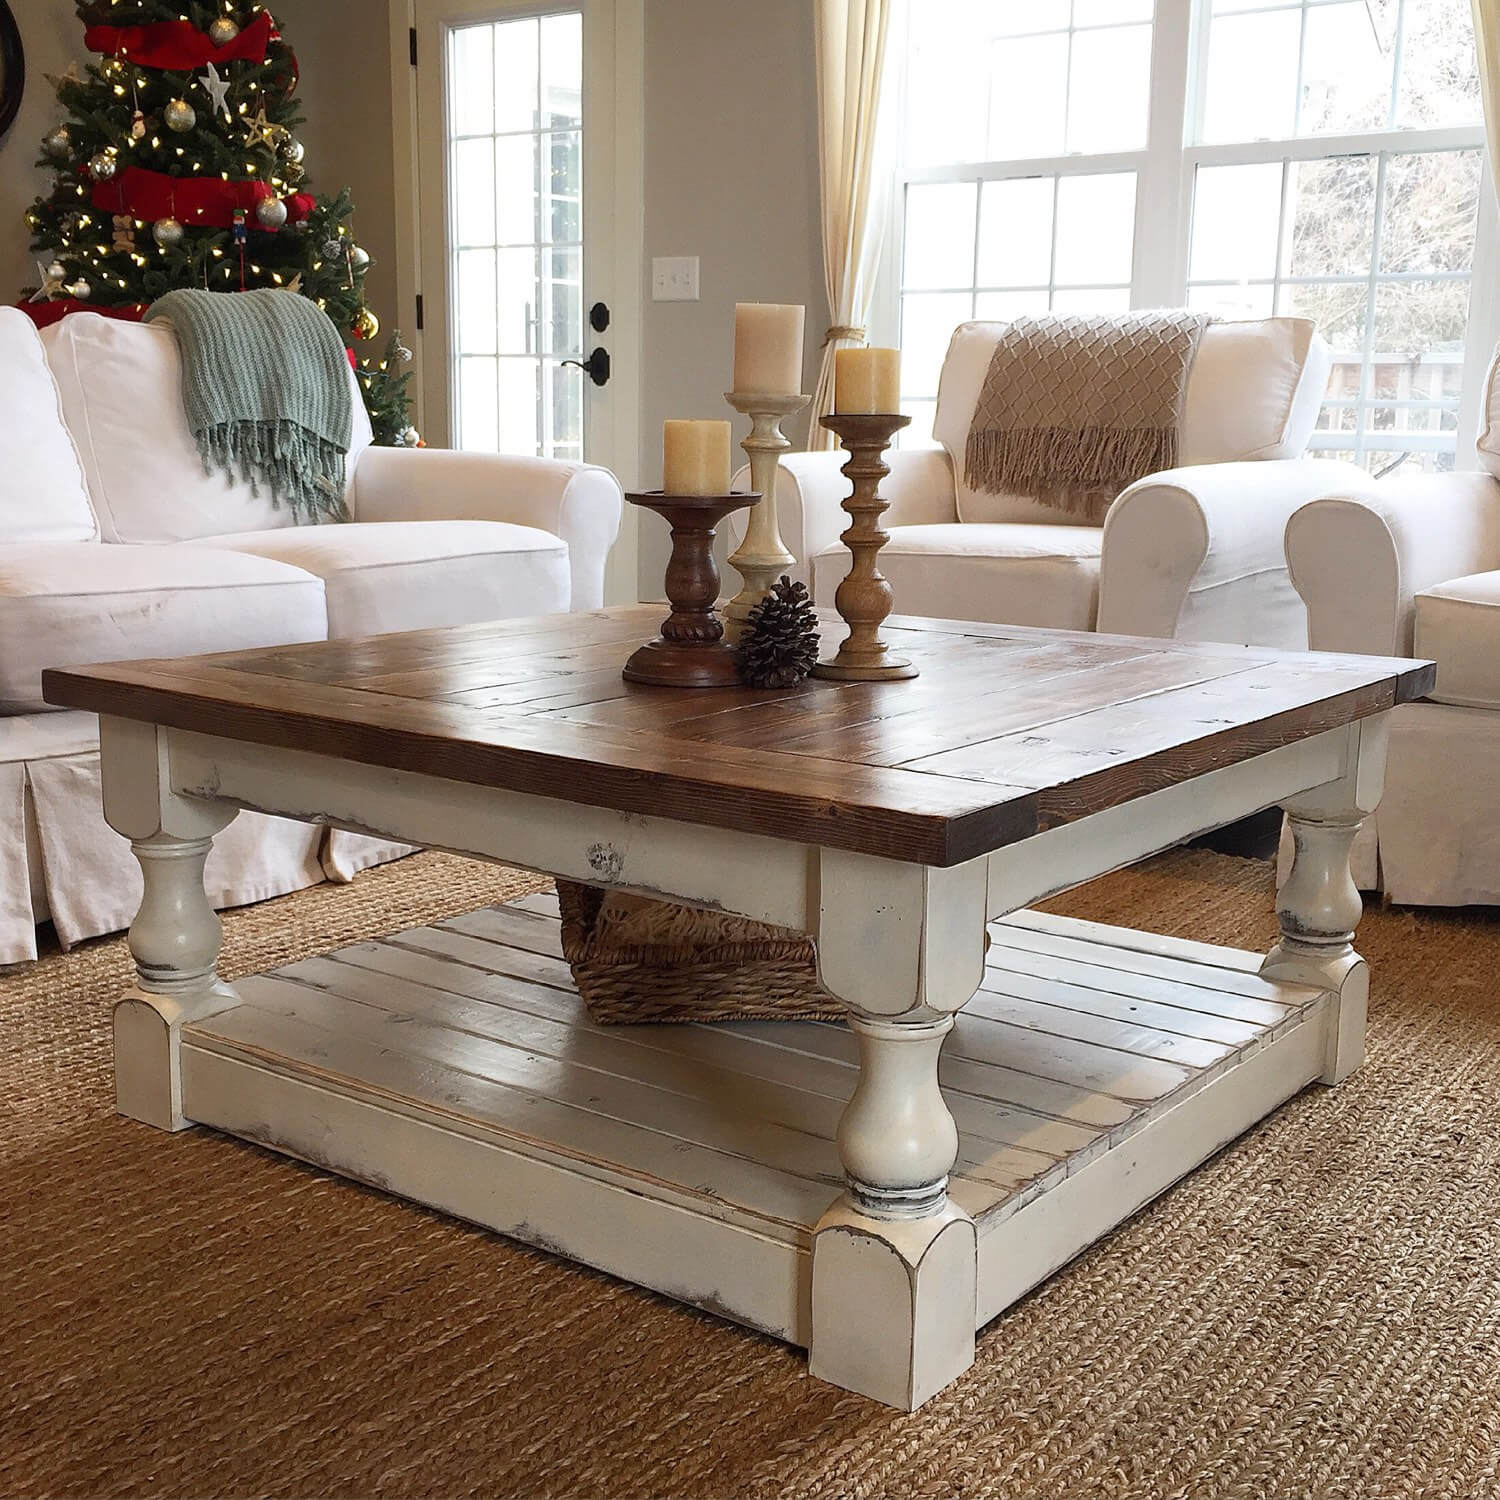 best coffee table decorating ideas and designs for homebnc living room end decor elegant solid wood topped with turned candlesticks log drawers unfinished maple timber laura